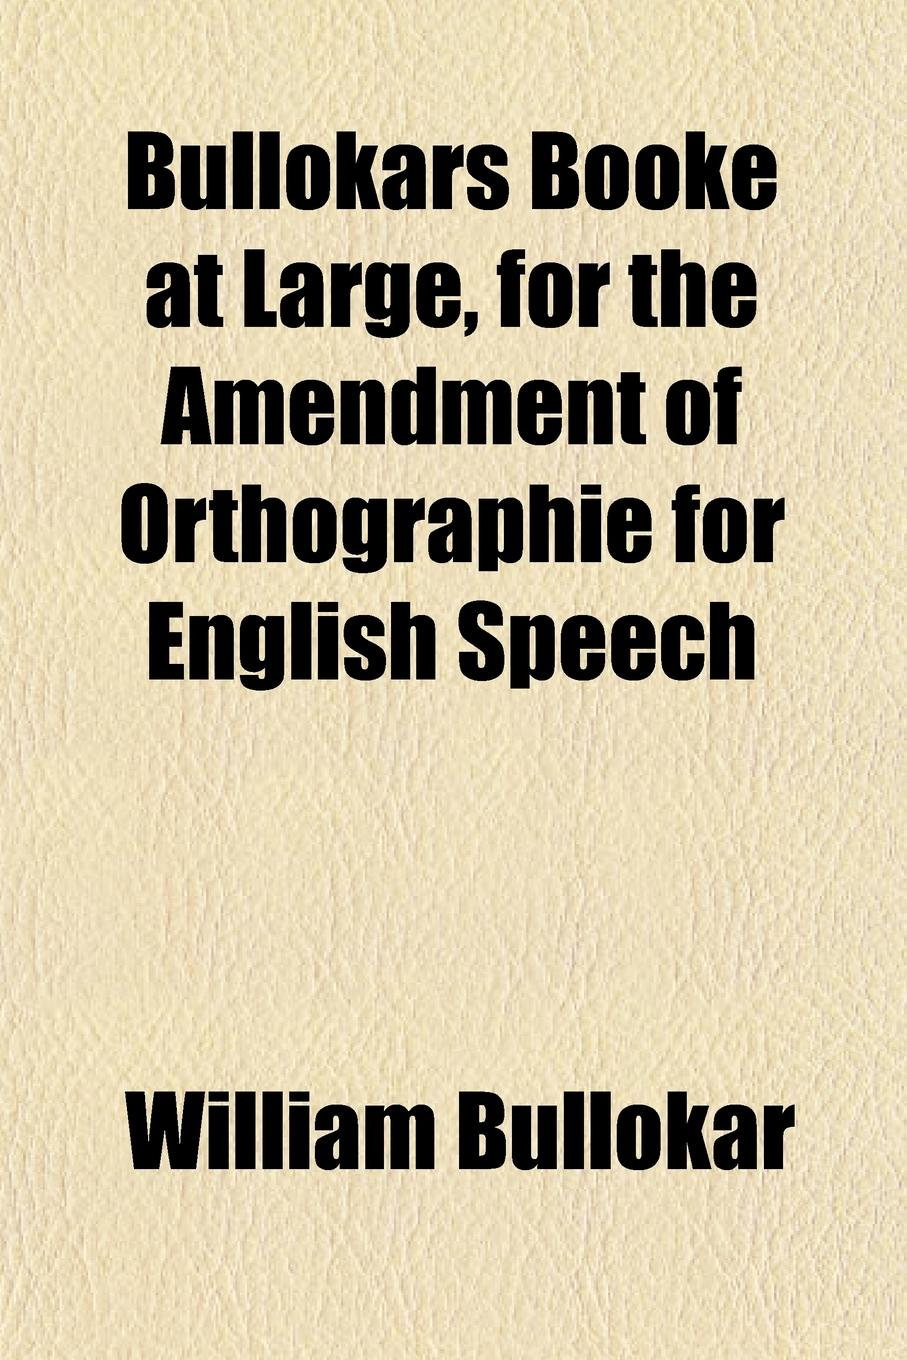 William Bullokar Bullokars Booke at Large, for the Amendment of Orthographie for English Speech barnes william an outline of english speech craft